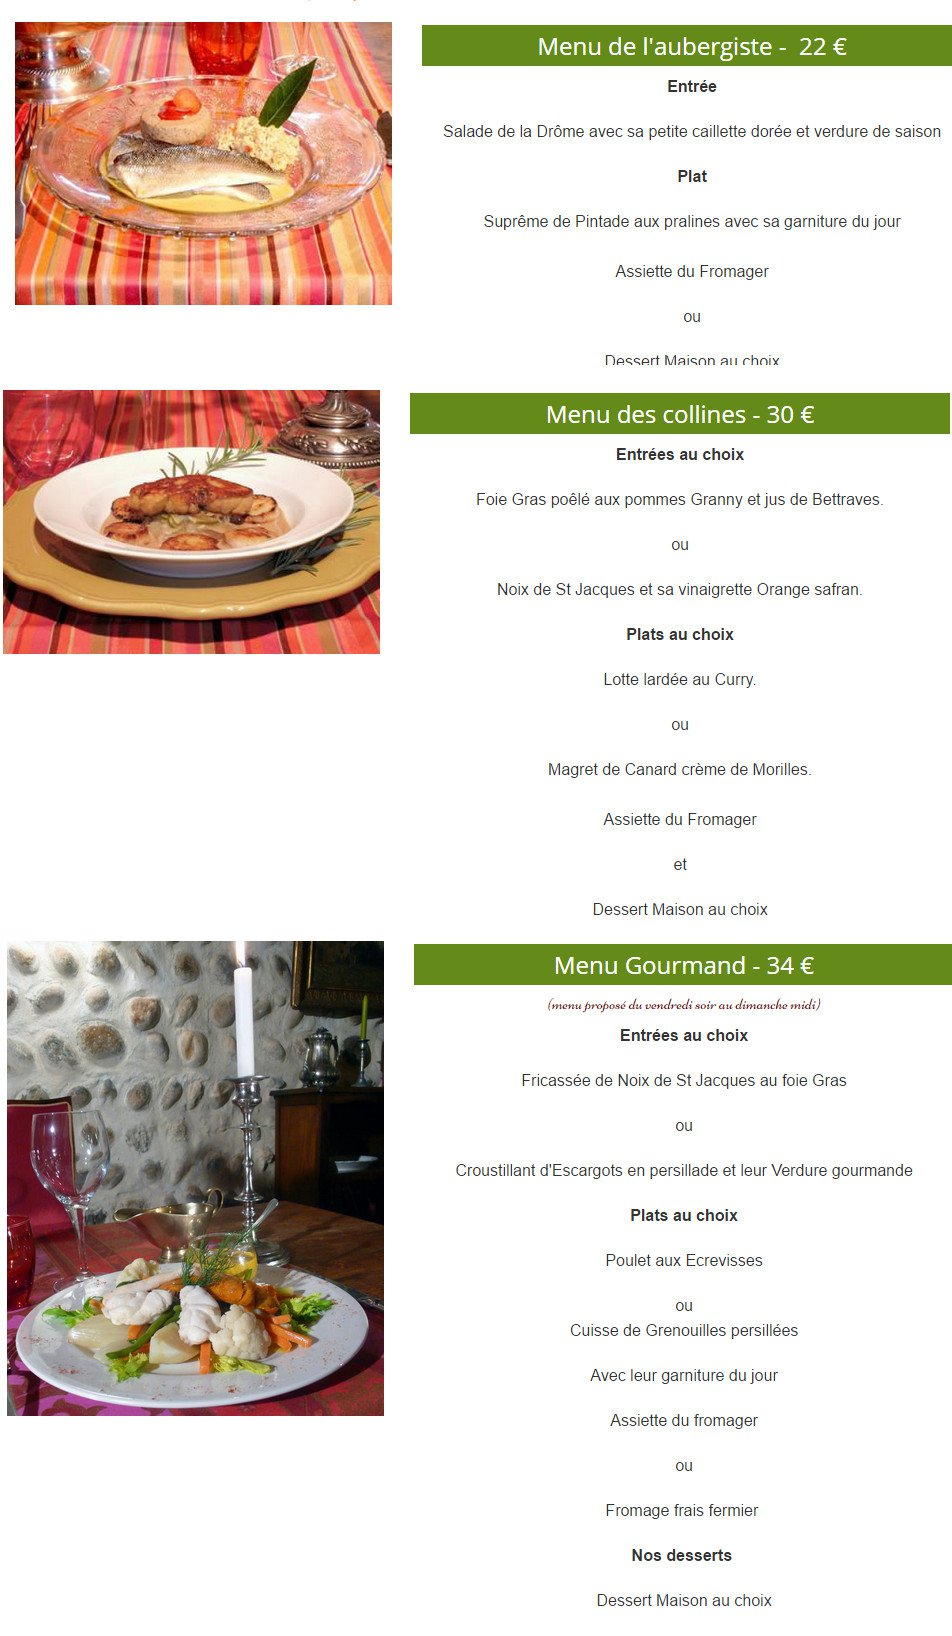 L auberge des collines granges les beaumont carte menu et photos - Les cedres restaurant granges les beaumont ...